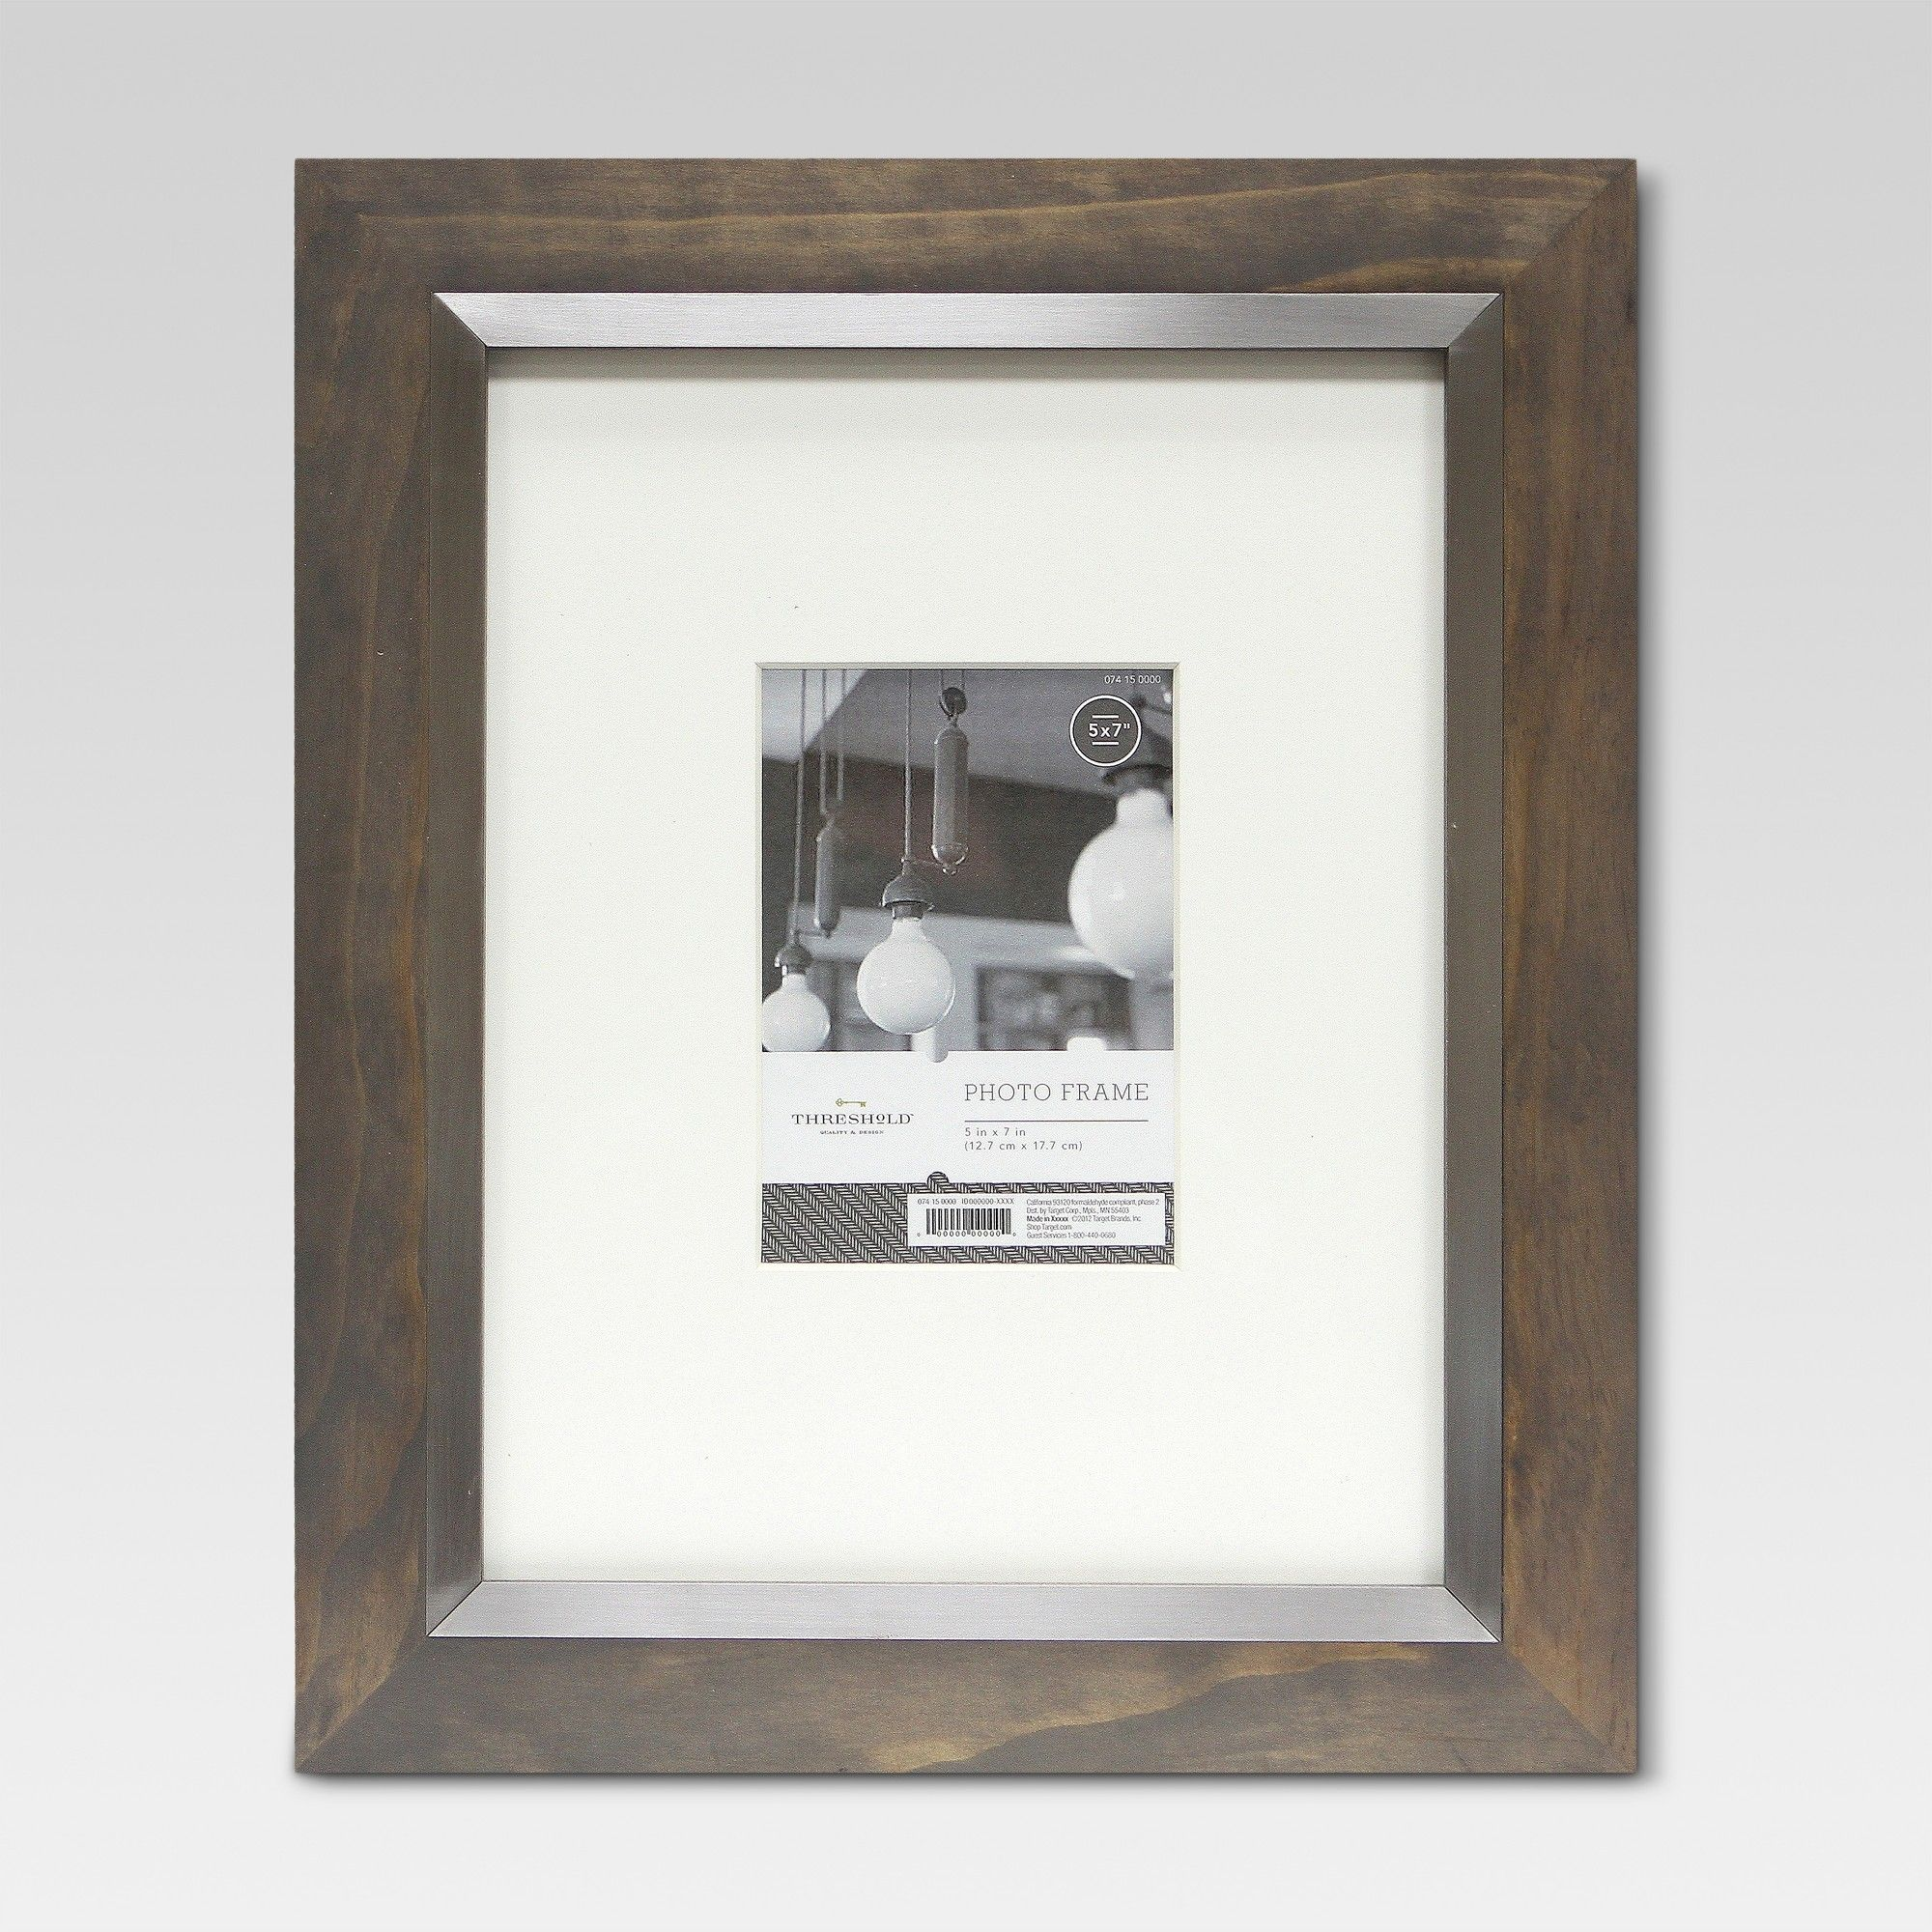 11 X14 Frame Holds 5x 7 Image With Silver Inner Gray Wash Threshold Frame Frame Display Frames On Wall